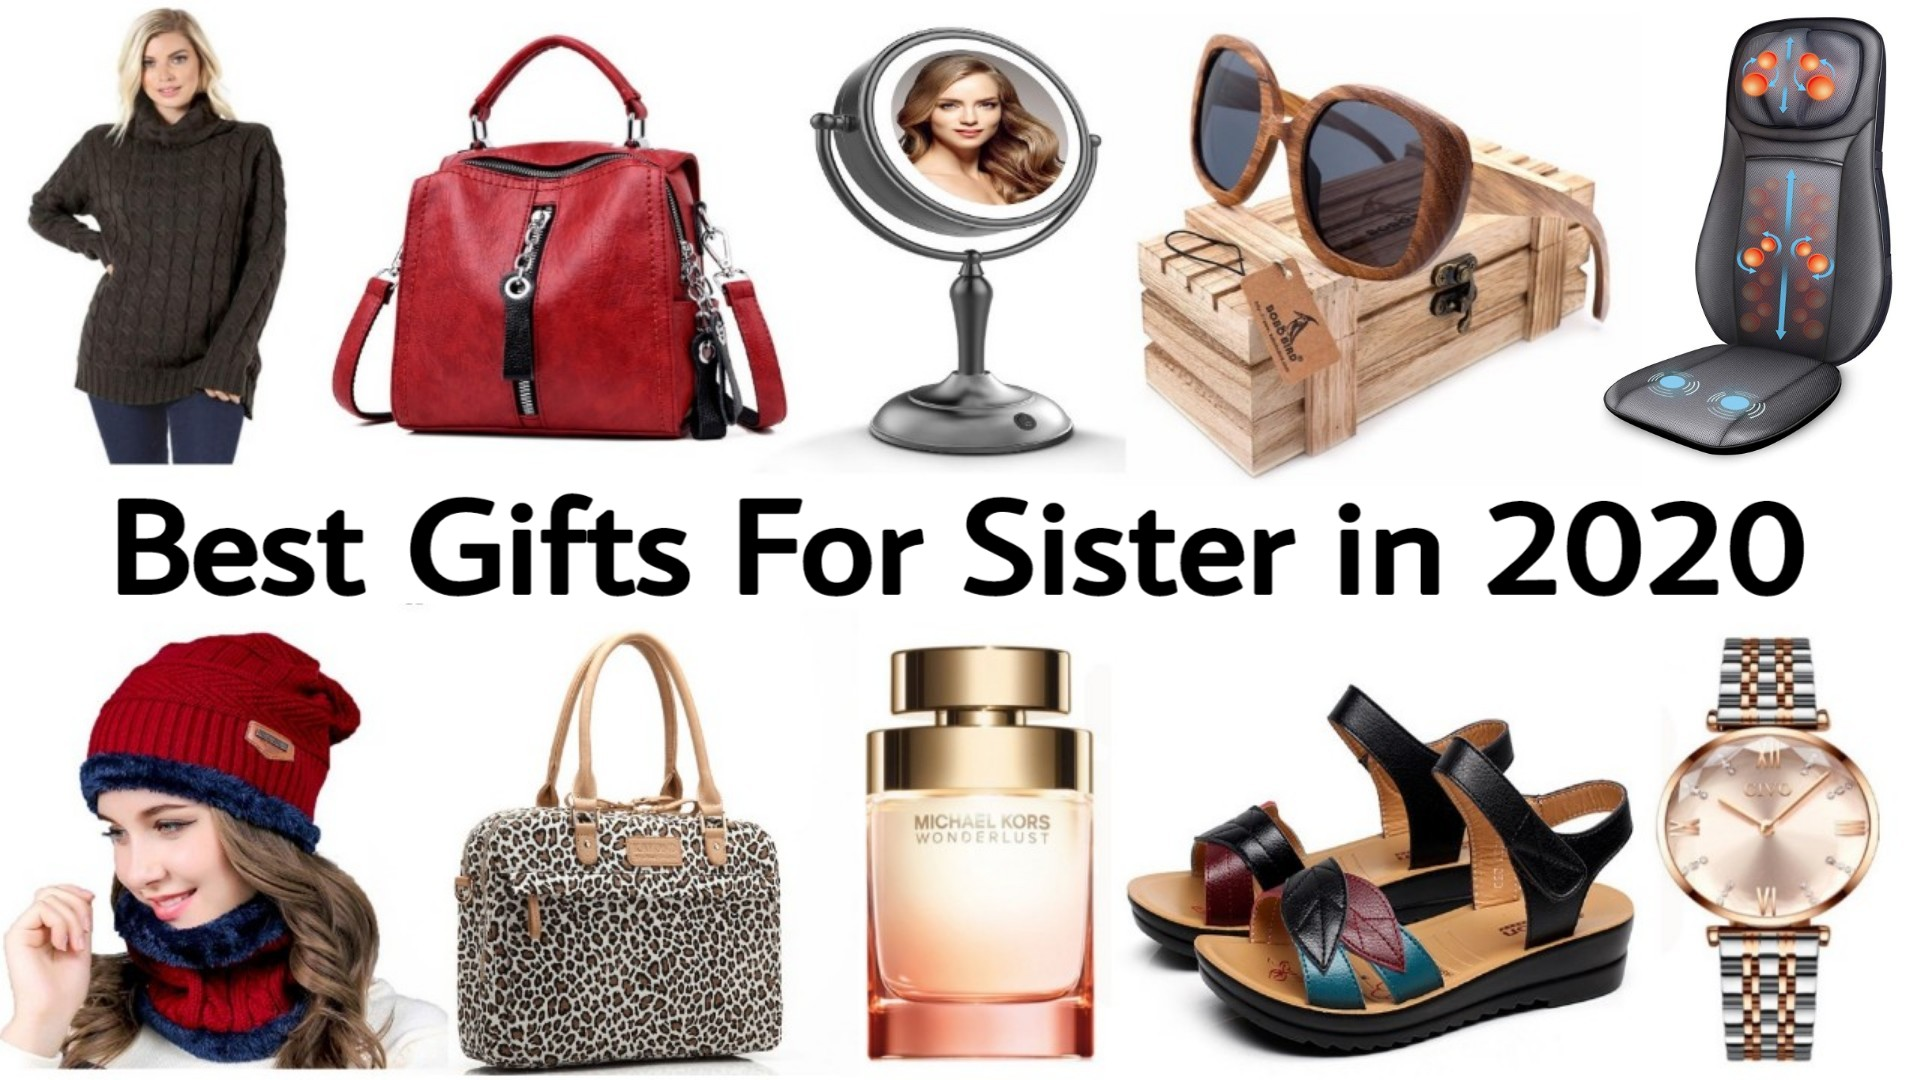 Best Christmas Gifts for Sister 2020 | Best Birthday Gifts for Sister 2020